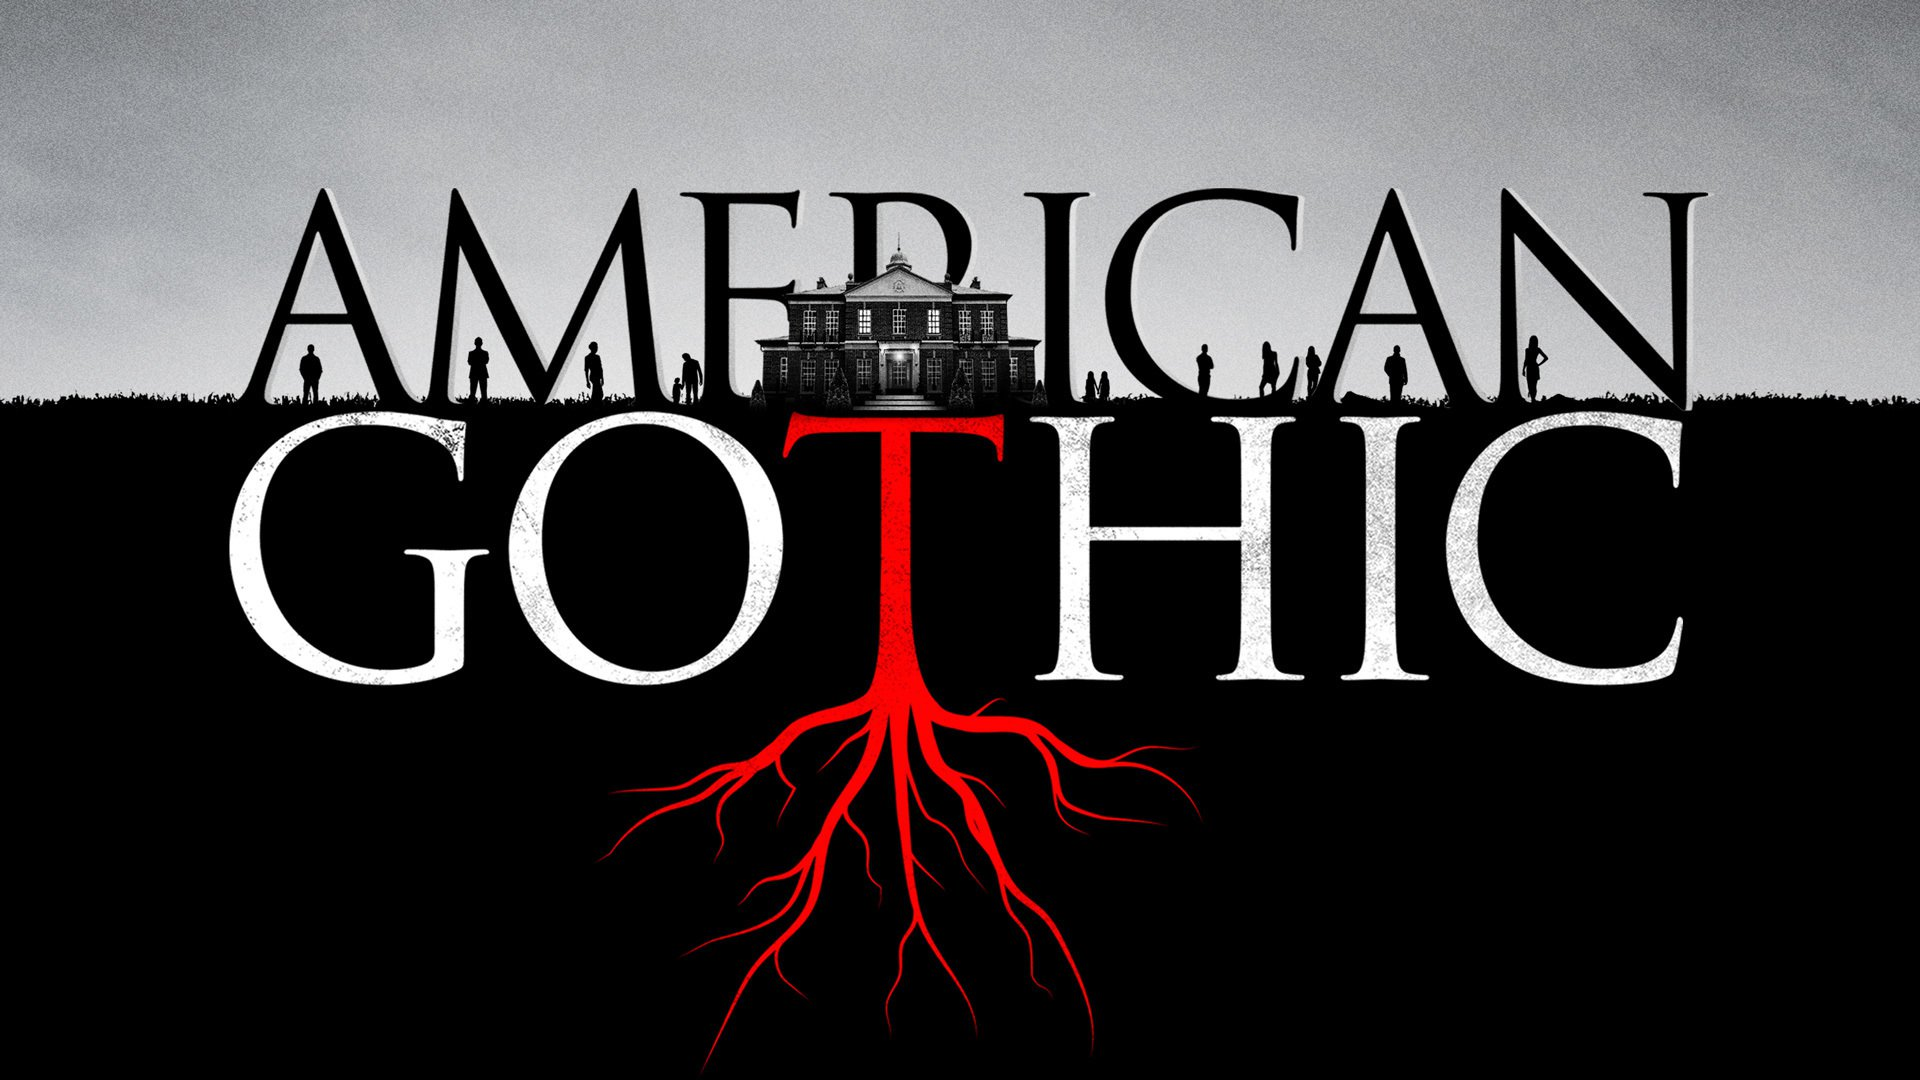 American Gothic HD Wallpapers